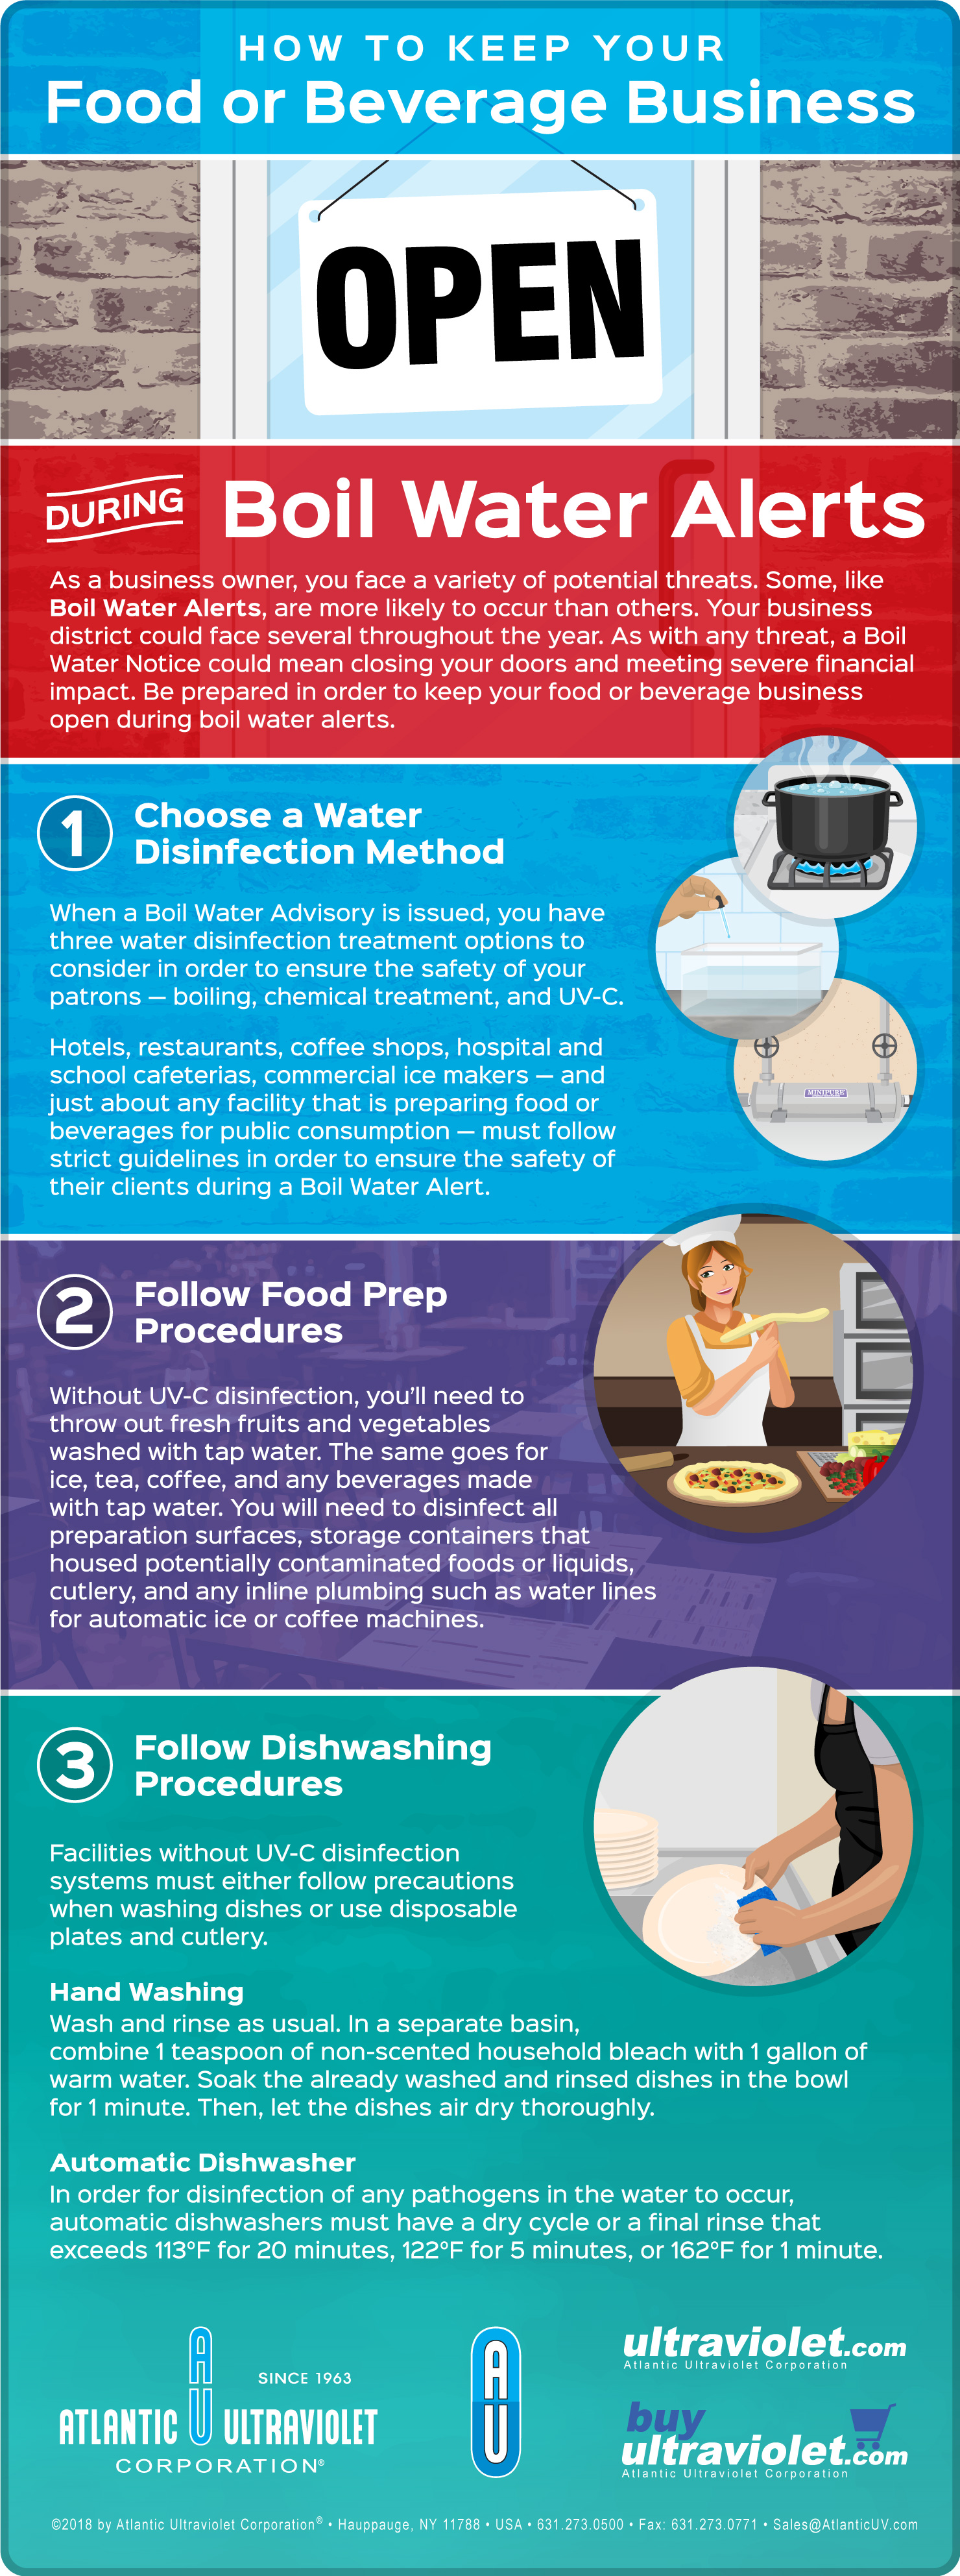 How to Keep Your Business Open During Boil Water Alerts - Infographic